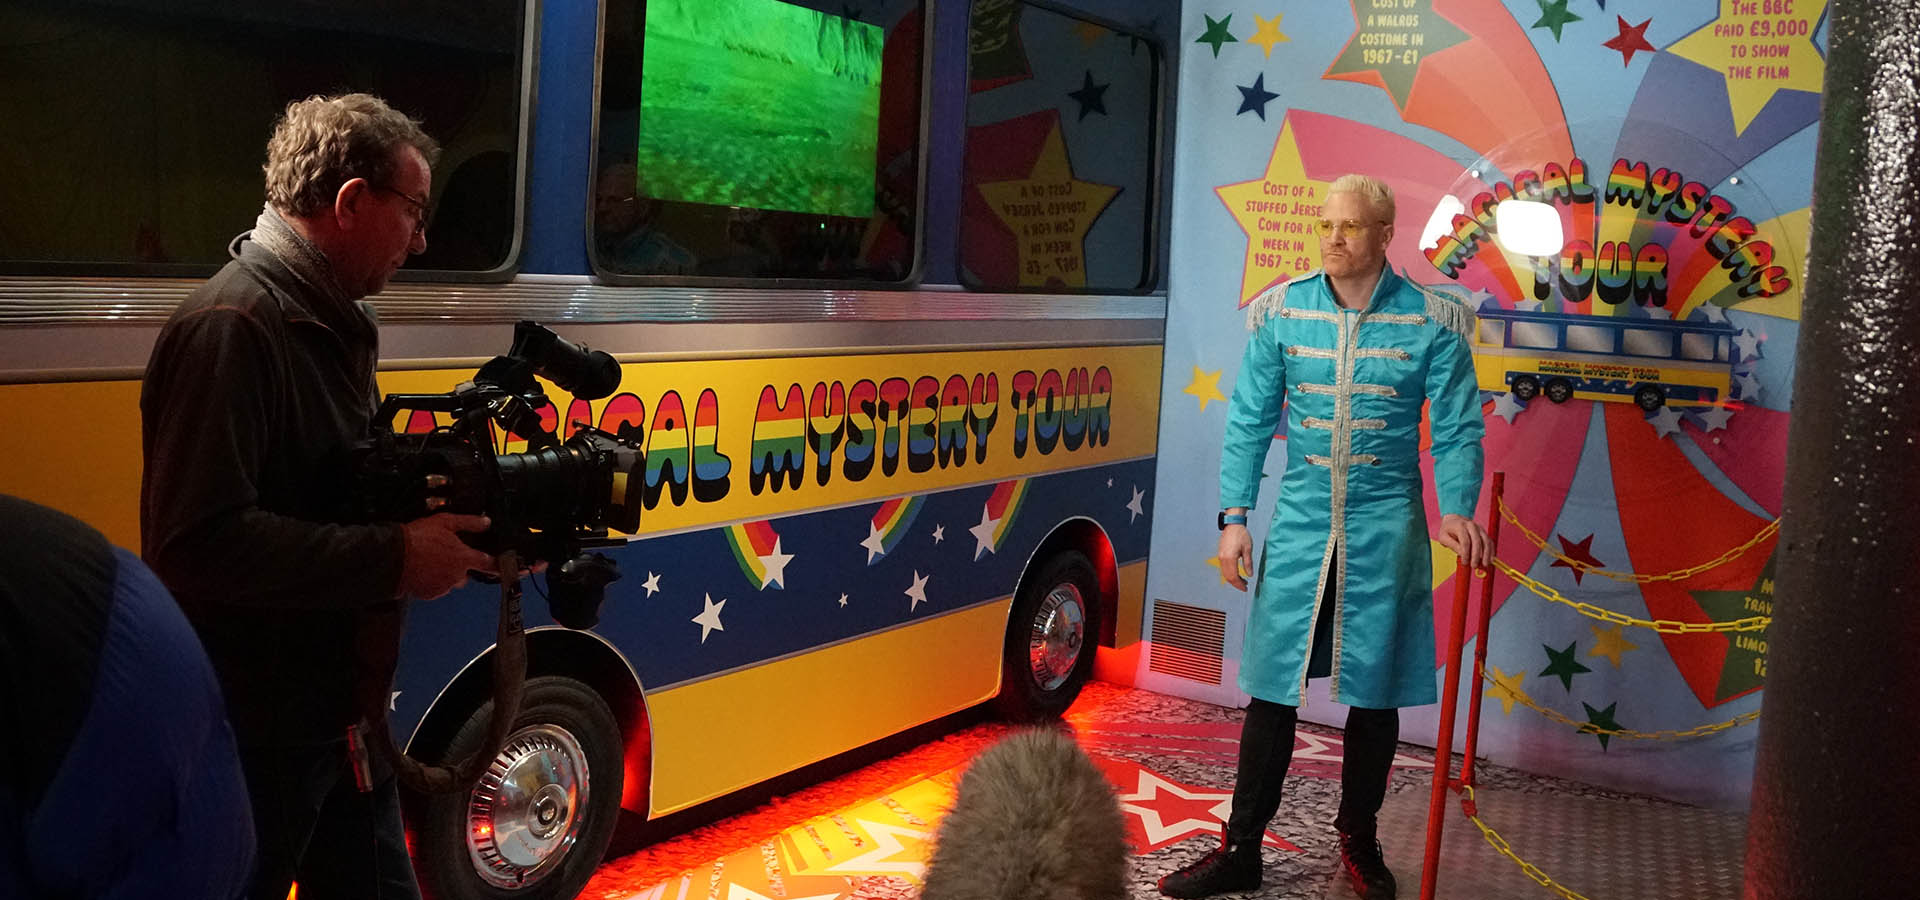 Iwan Thomas MBE: ITV visits The Beatles Story